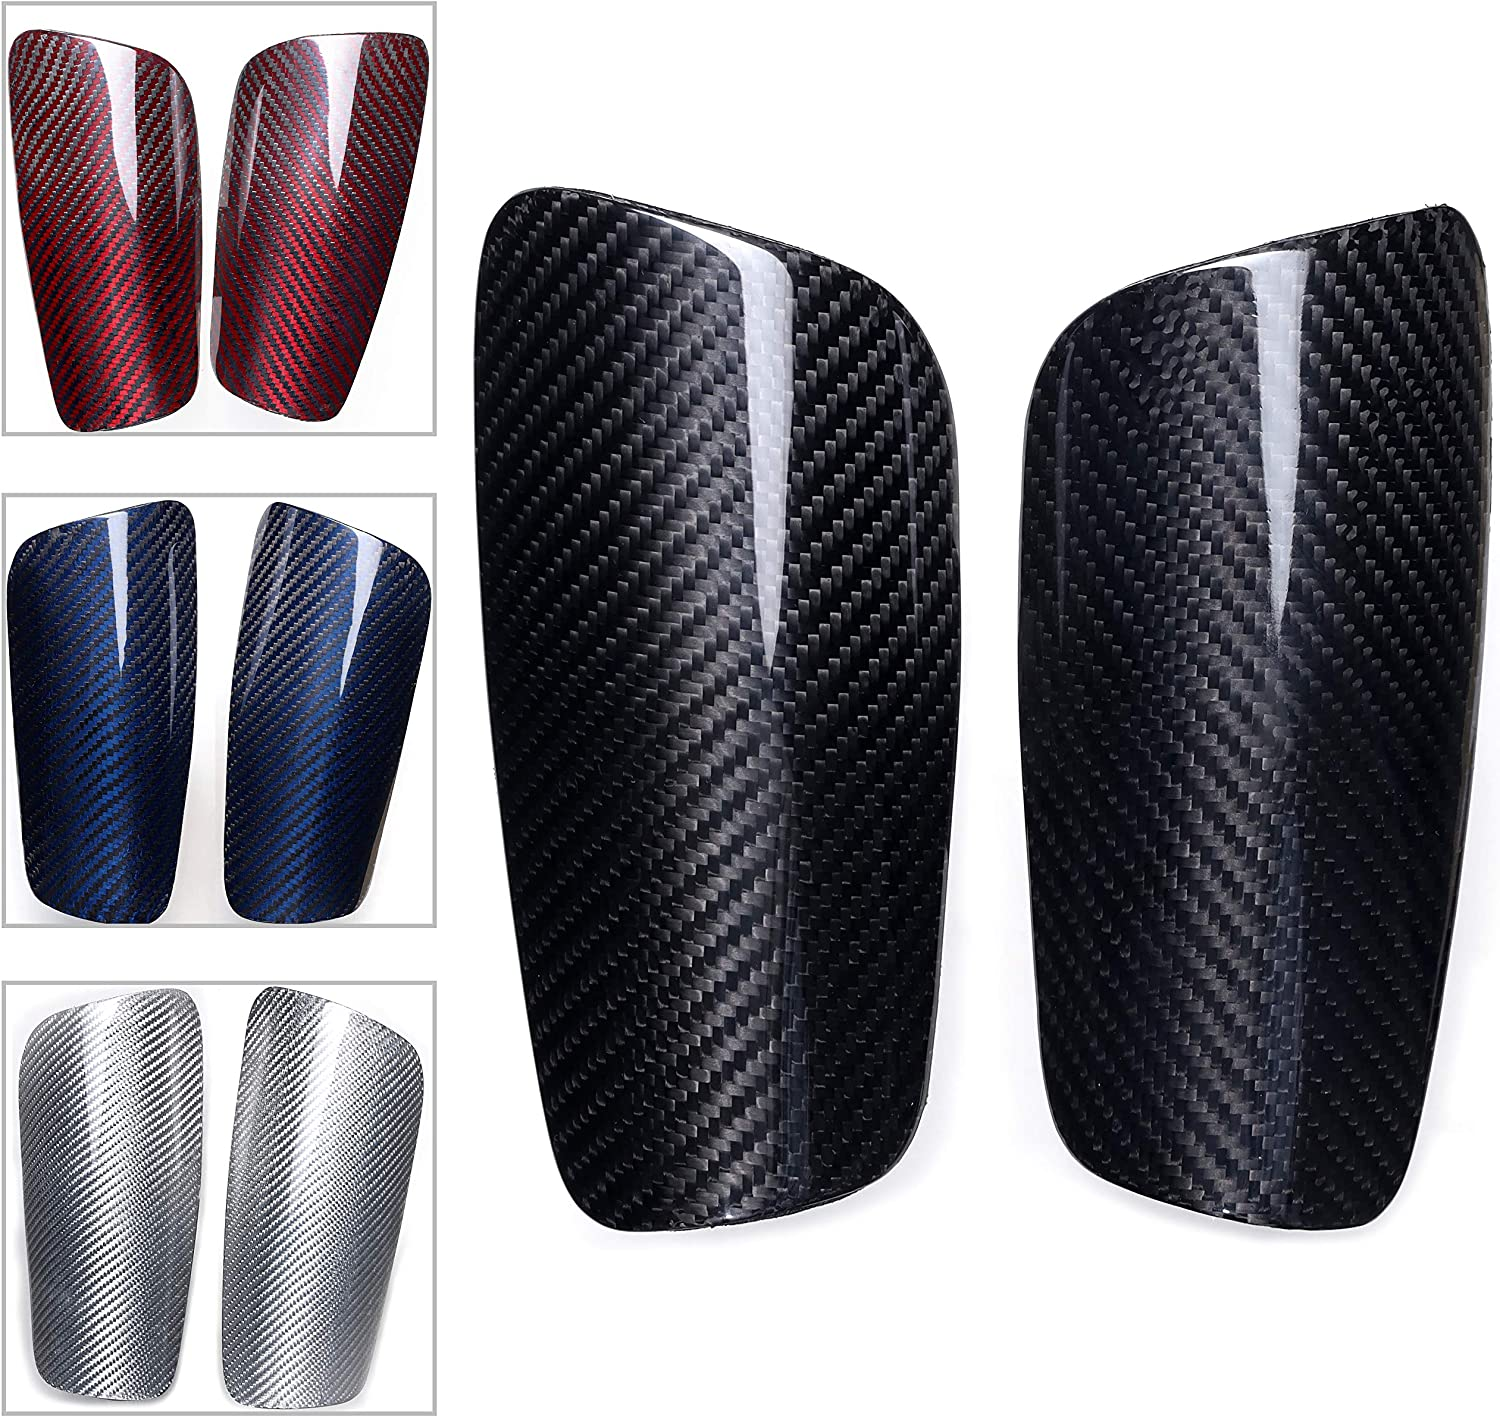 Carbon Fiber Soccer Max 63% OFF Shin 2021new shipping free shipping Guards with Kid You Cushioned for Large